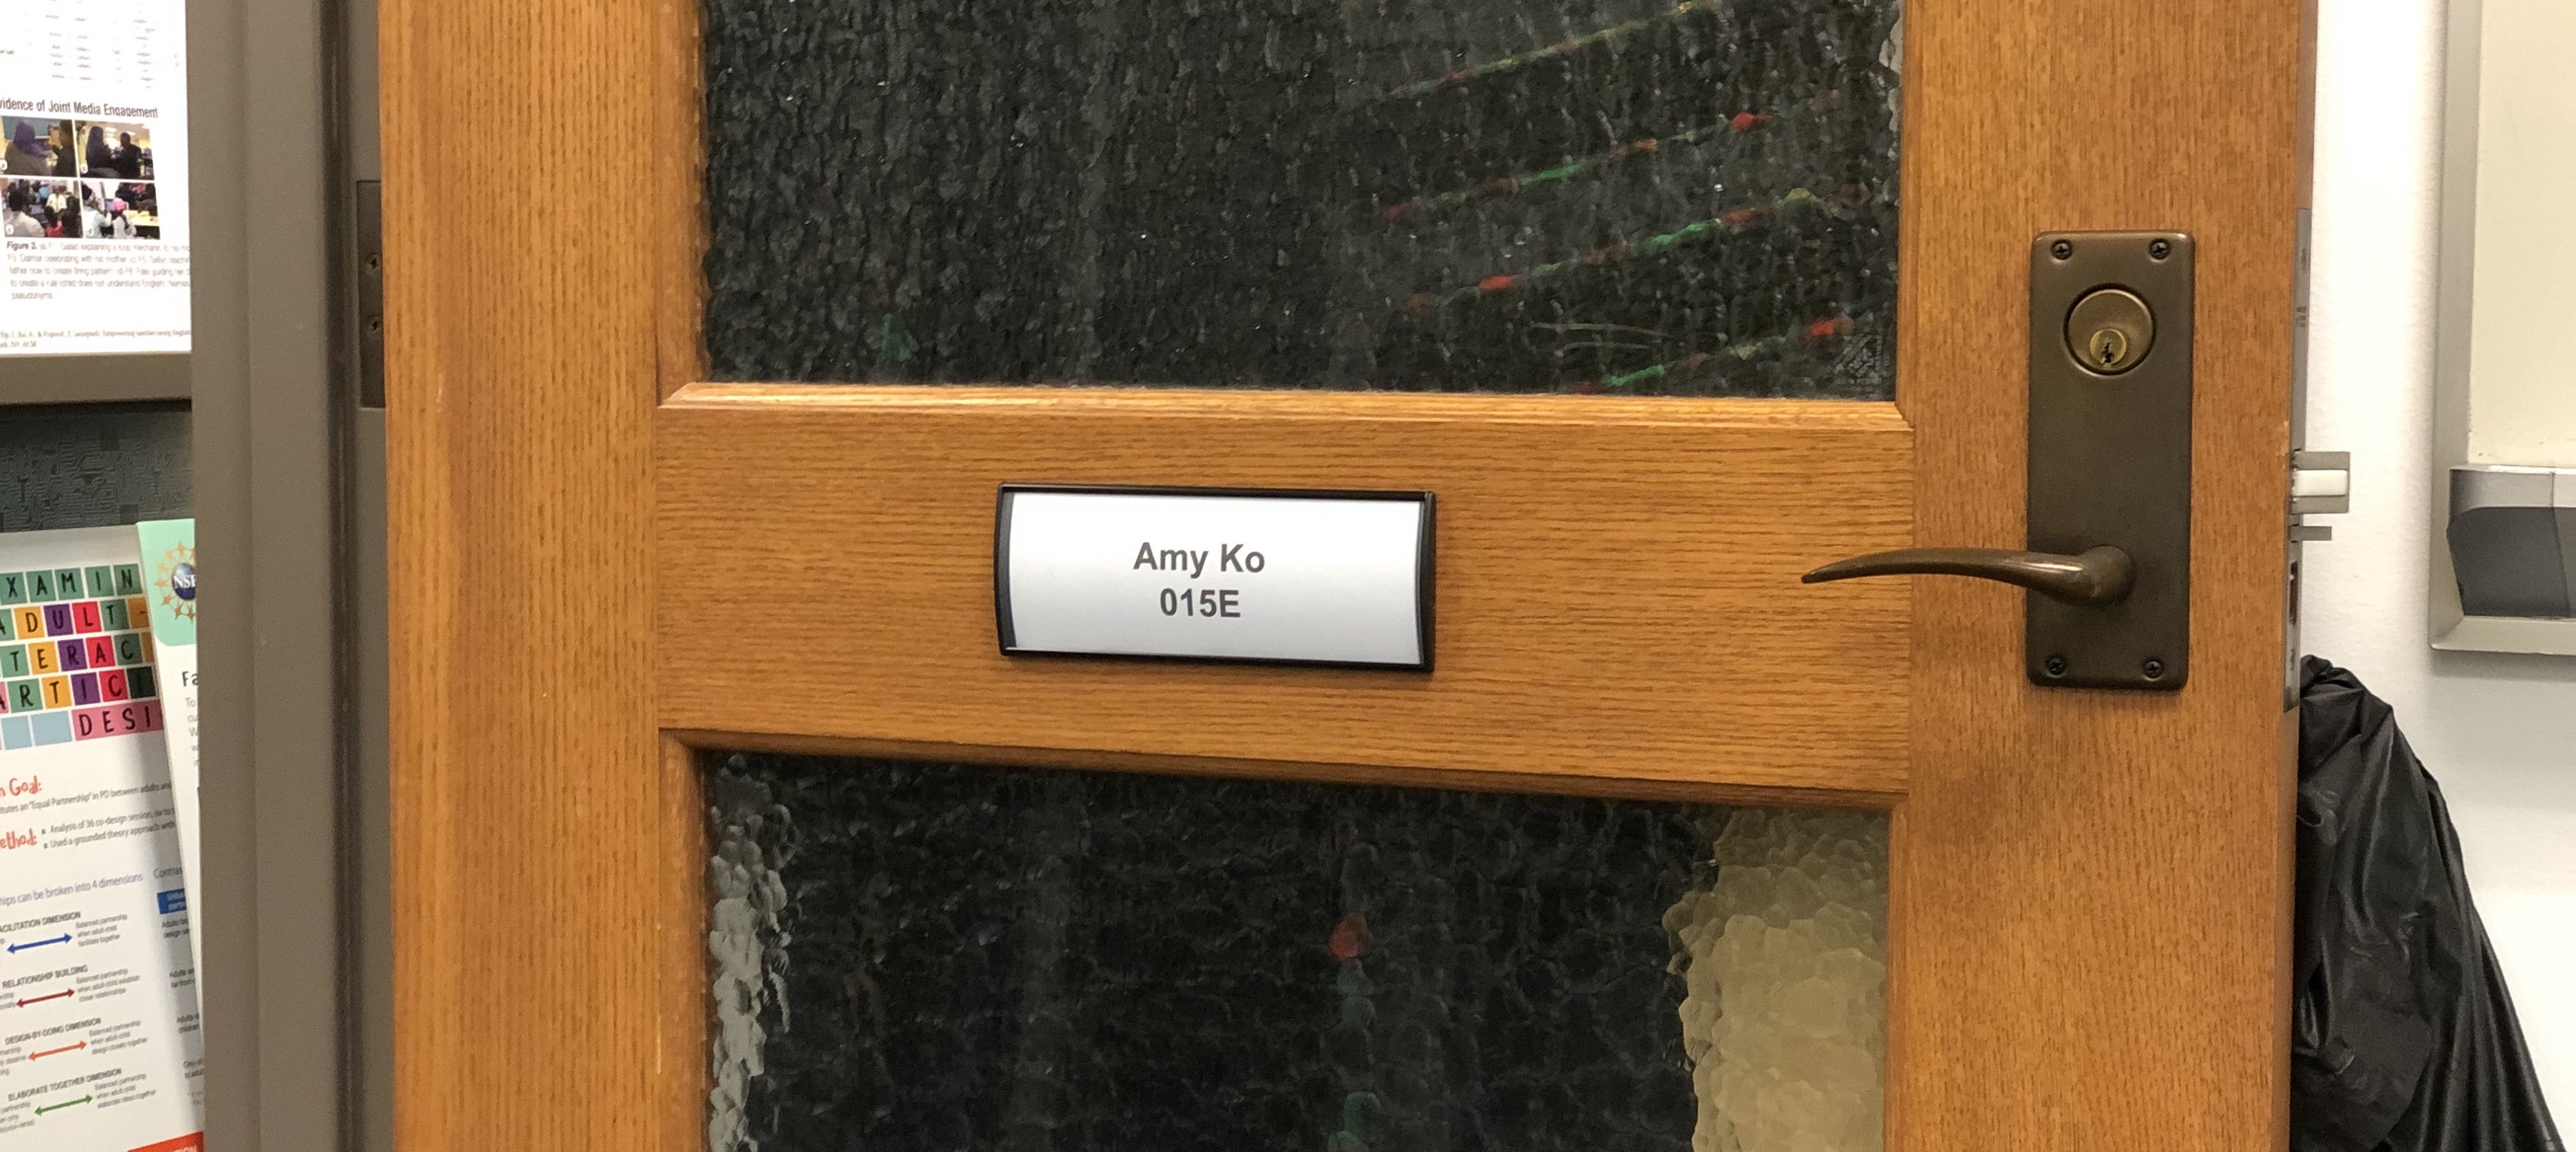 Amy's new name placard on her door.